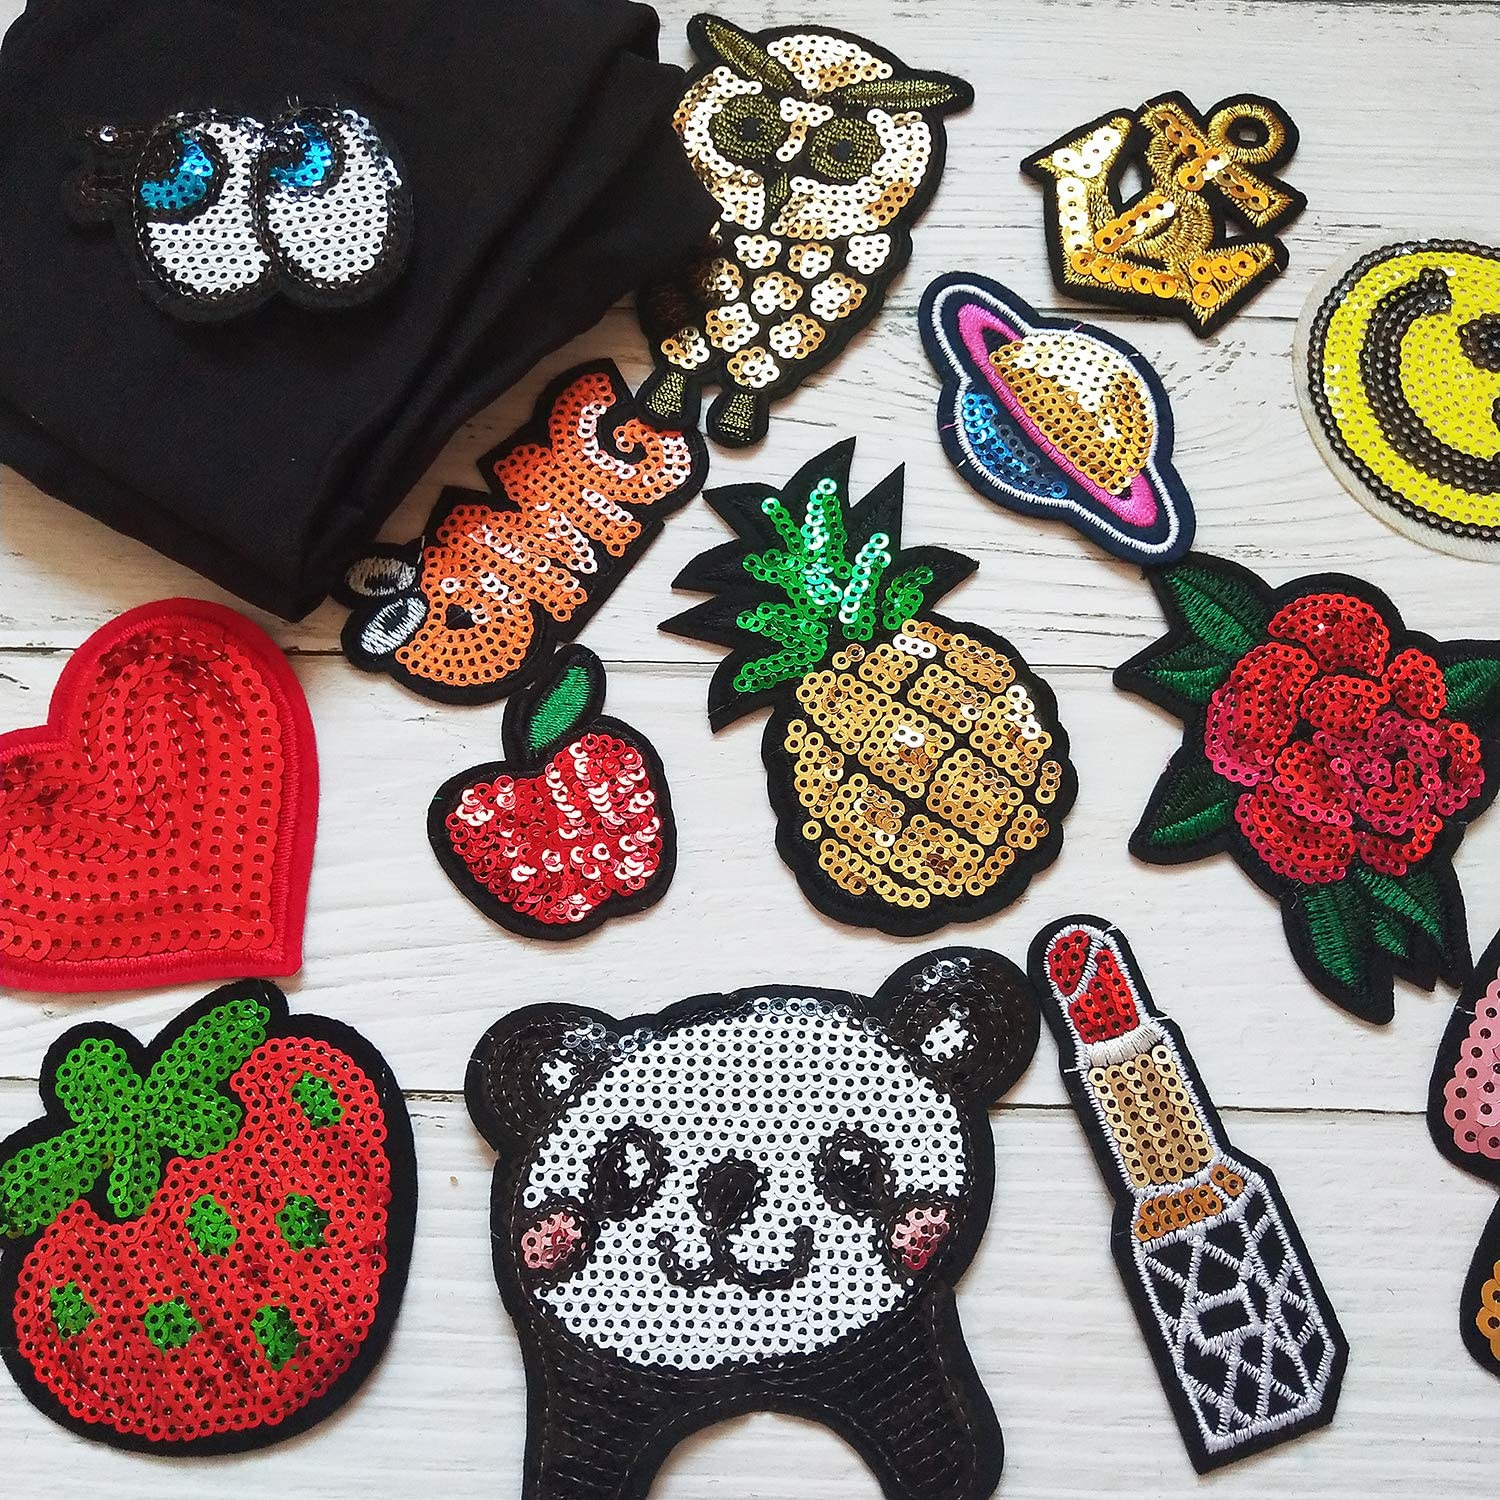 Girls Pink Iron On Patches Embroidered Pretty Appliques for Clothes Jackets Hats Backpacks Jeans Kids 16 Pieces Pink Iron On Patches